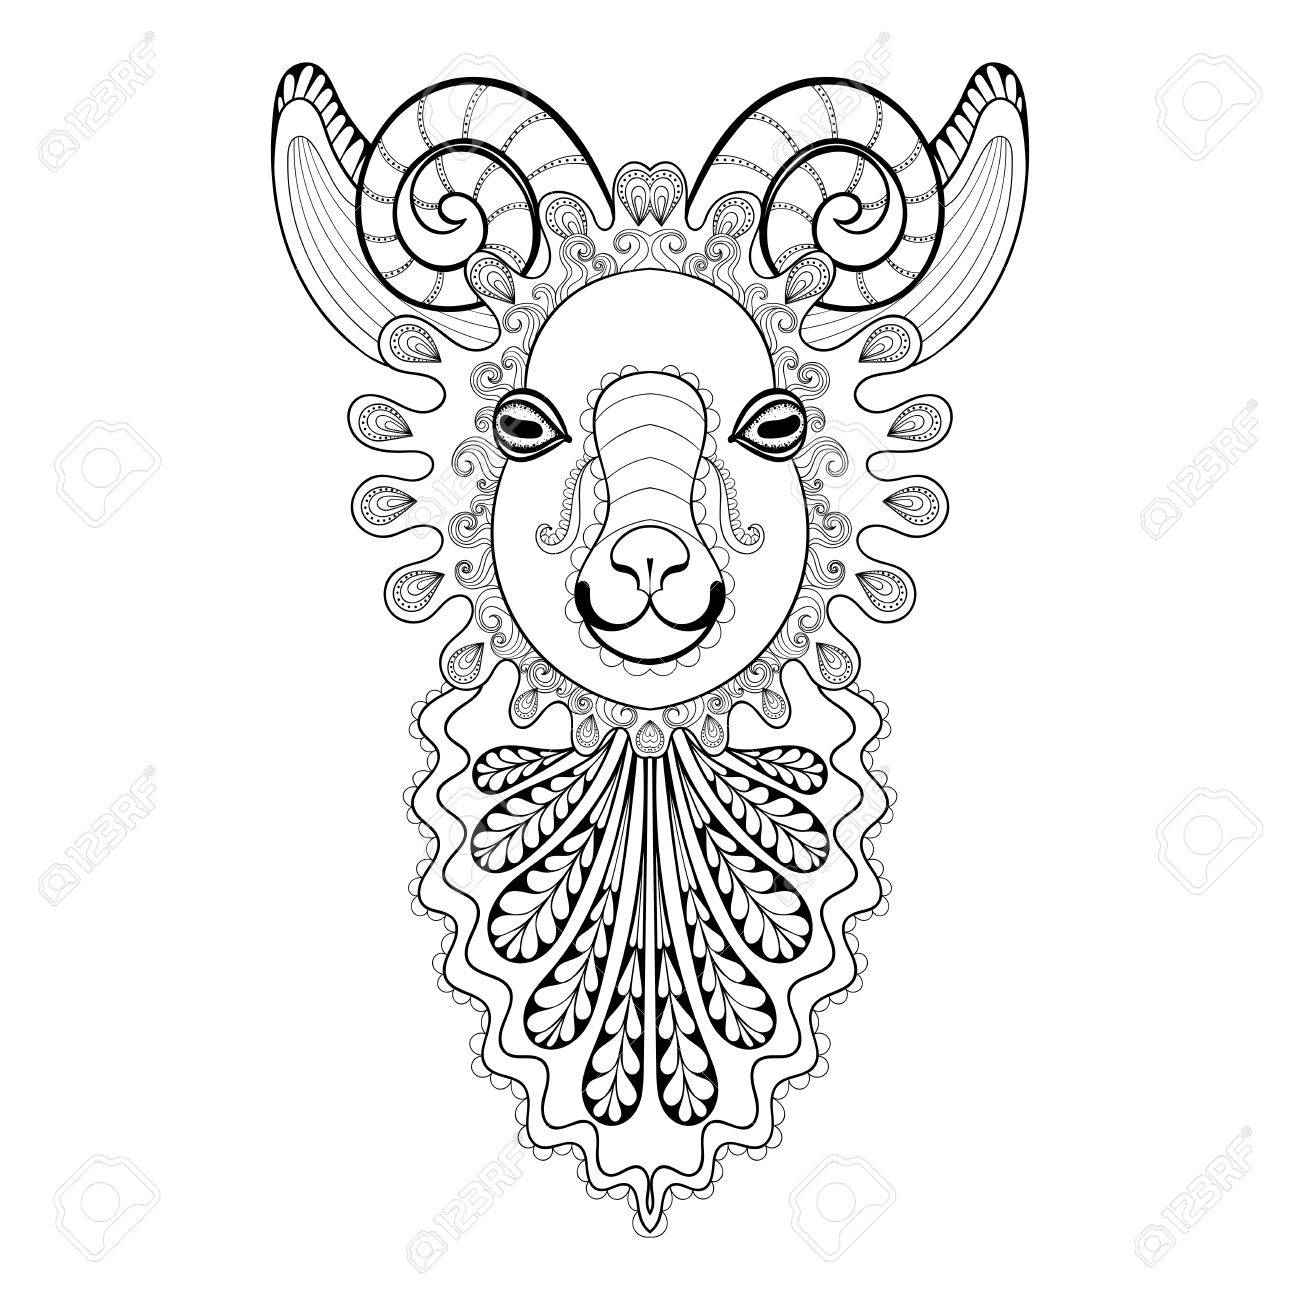 2df2a595d Vector - Vector zentangle Ram Head illustration, Goat print for adult anti  stress coloring page. Hand drawn artistically ornamental patterned  decorative ...